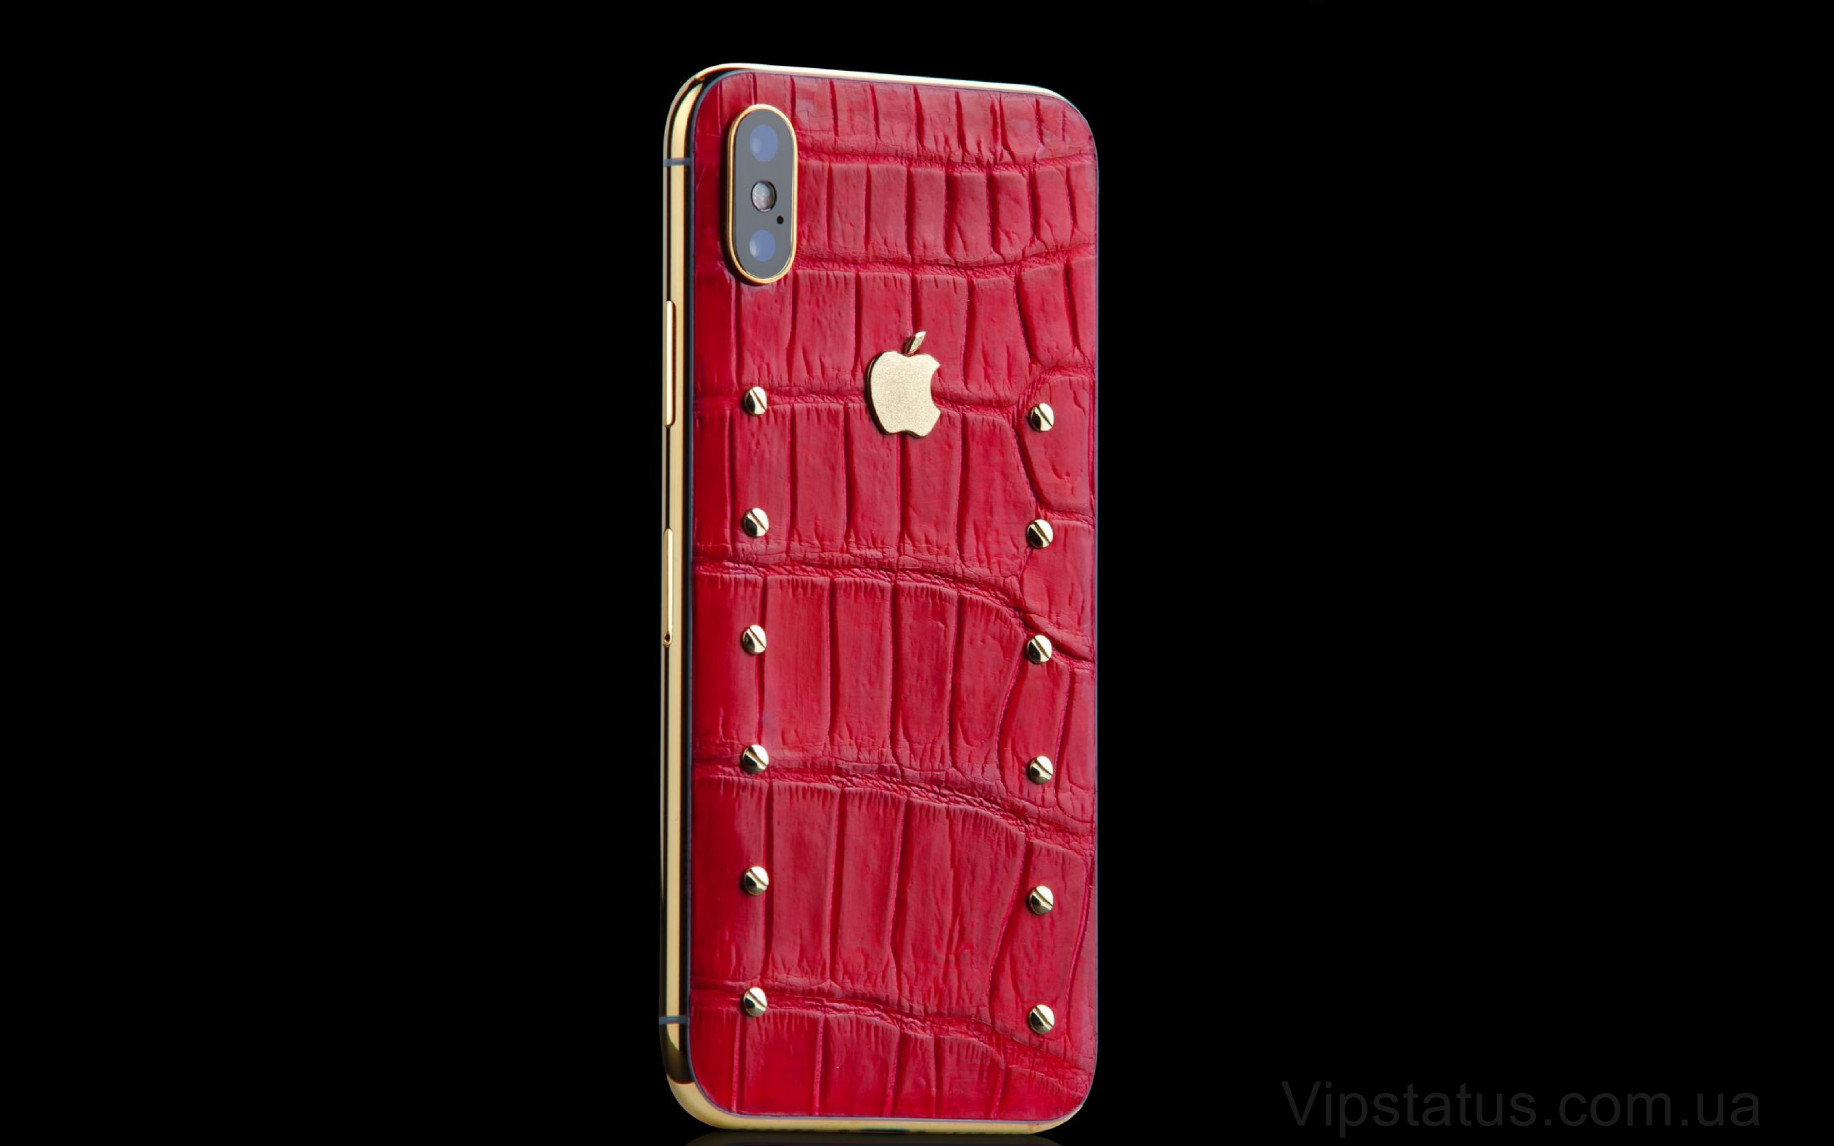 Элитный Red Princess IPHONE XS 512 GB Red Princess IPHONE XS 512 GB изображение 1